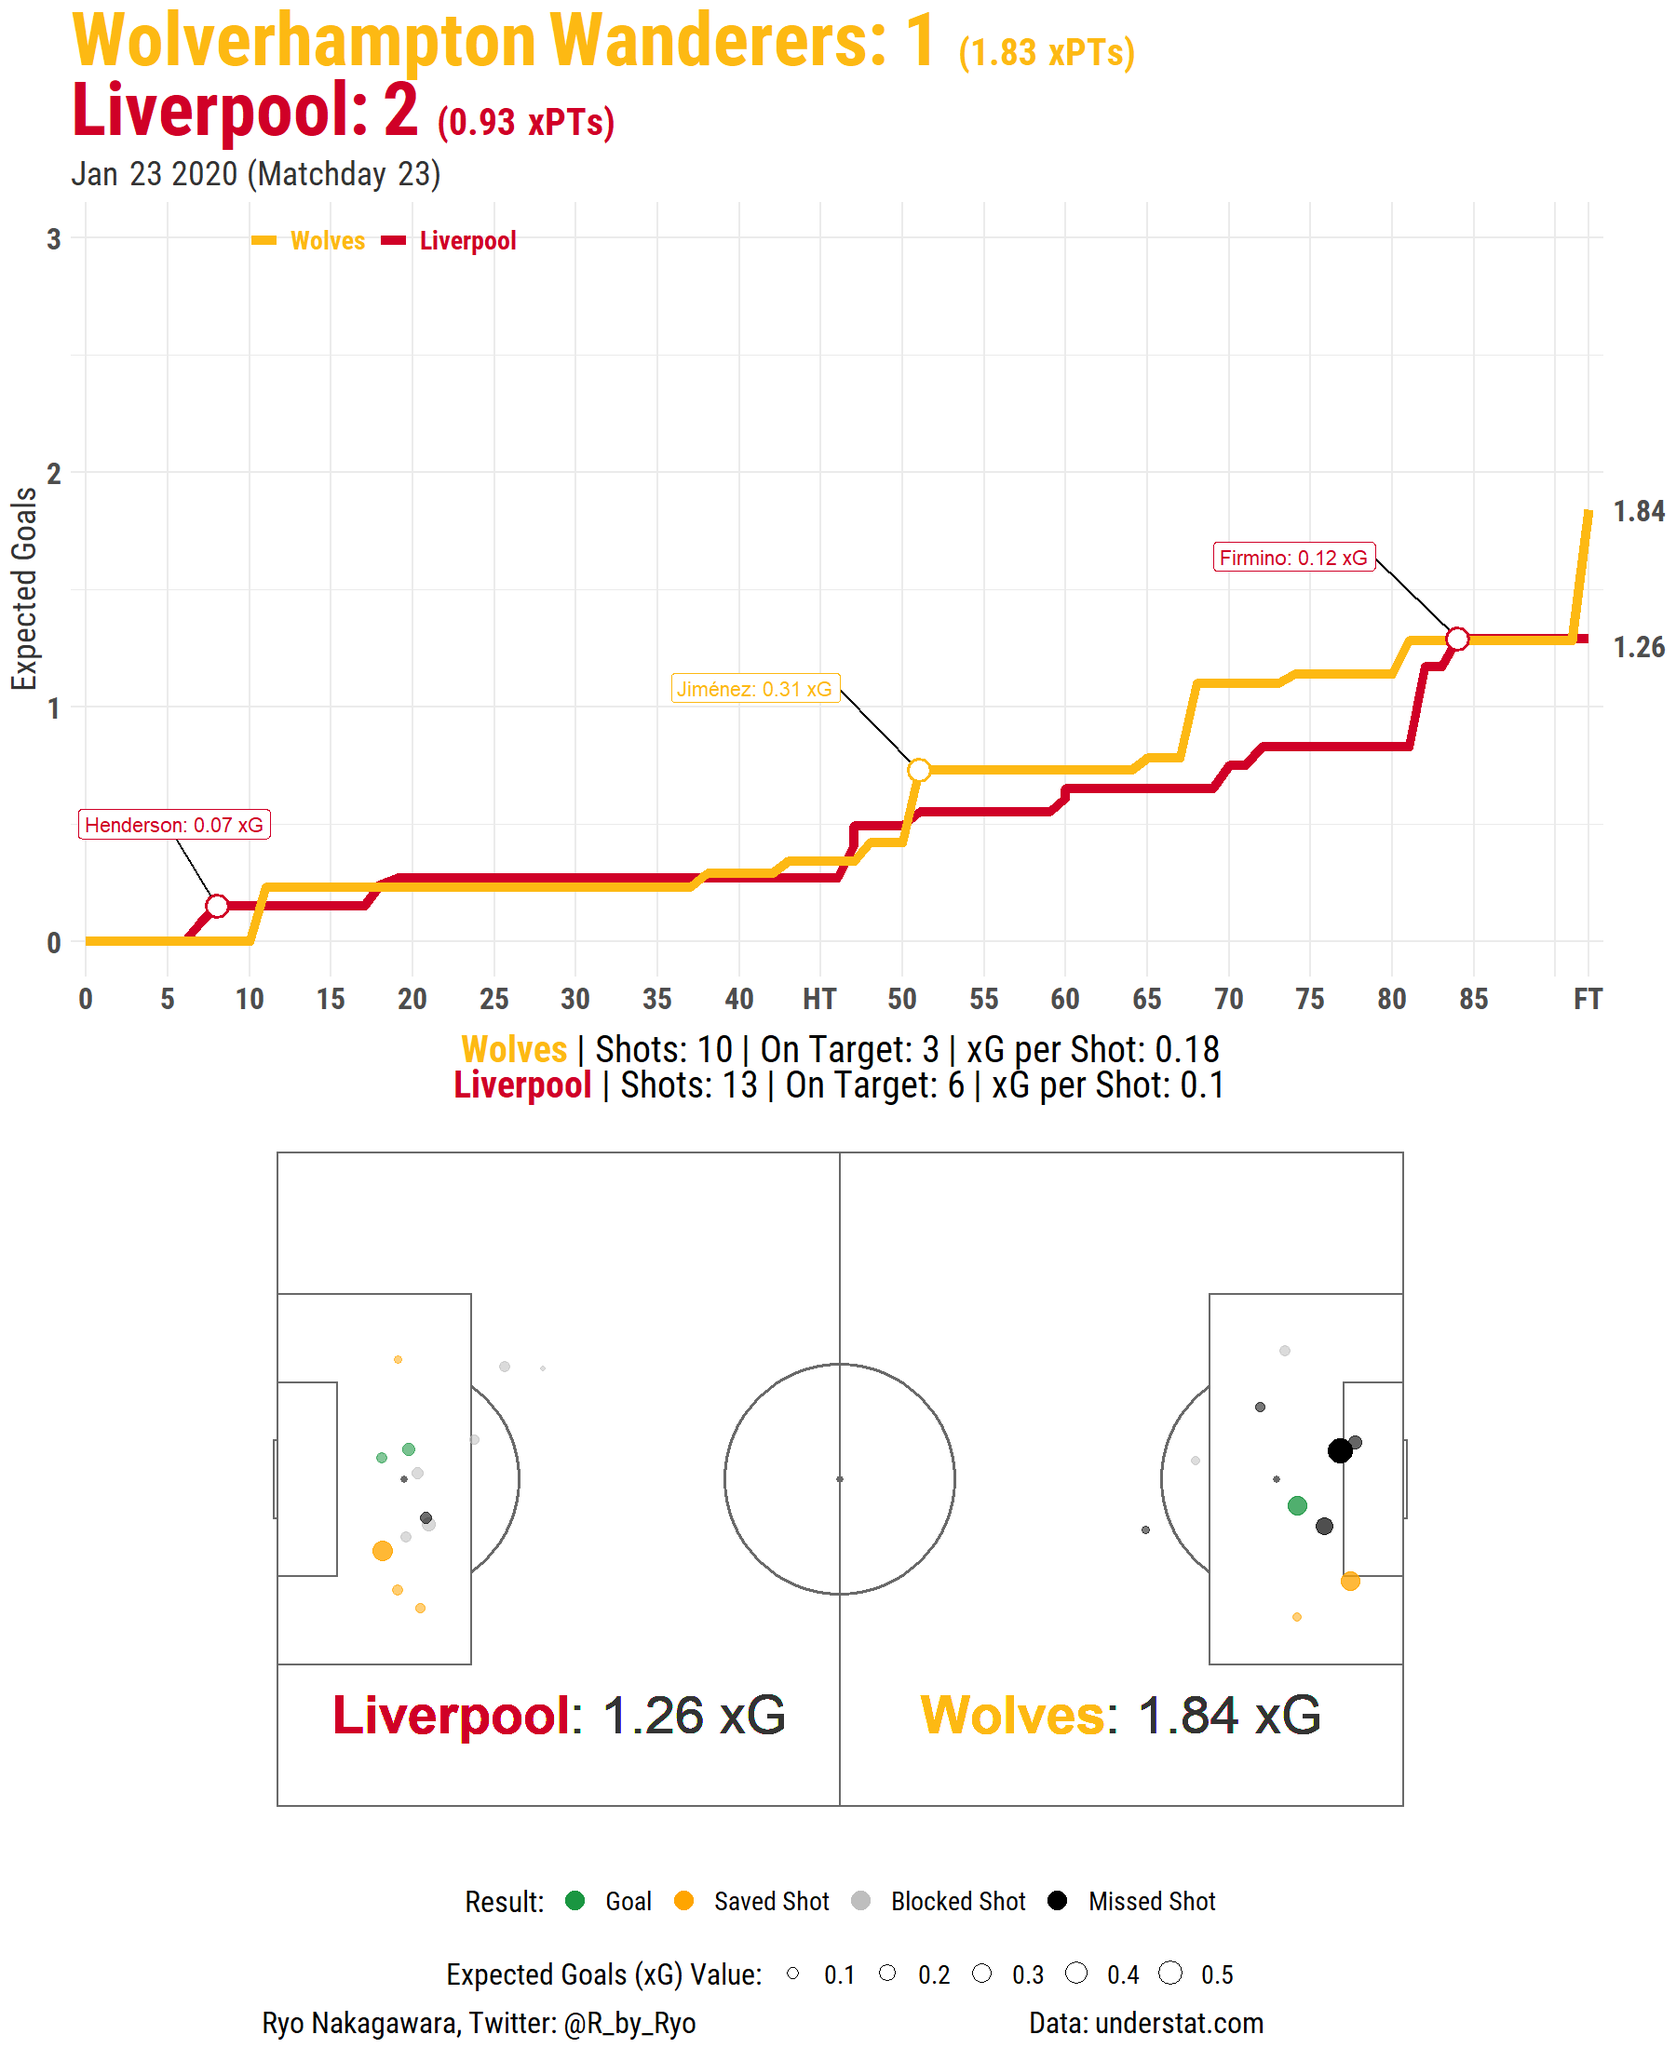 @LFC Matchday 2⃣3⃣, Mentality Monsters Part ❓: Game of 2 halves where #LFC had the advantage in the 1st despite an injury to Mane while a Raul, Adama, & Neves inspired #WWFC dominated for most of the 2nd. Bobby Firmino smashes in the winner, now unbeaten in 40 games! #rstats https://t.co/Vp1hZ8PxDn